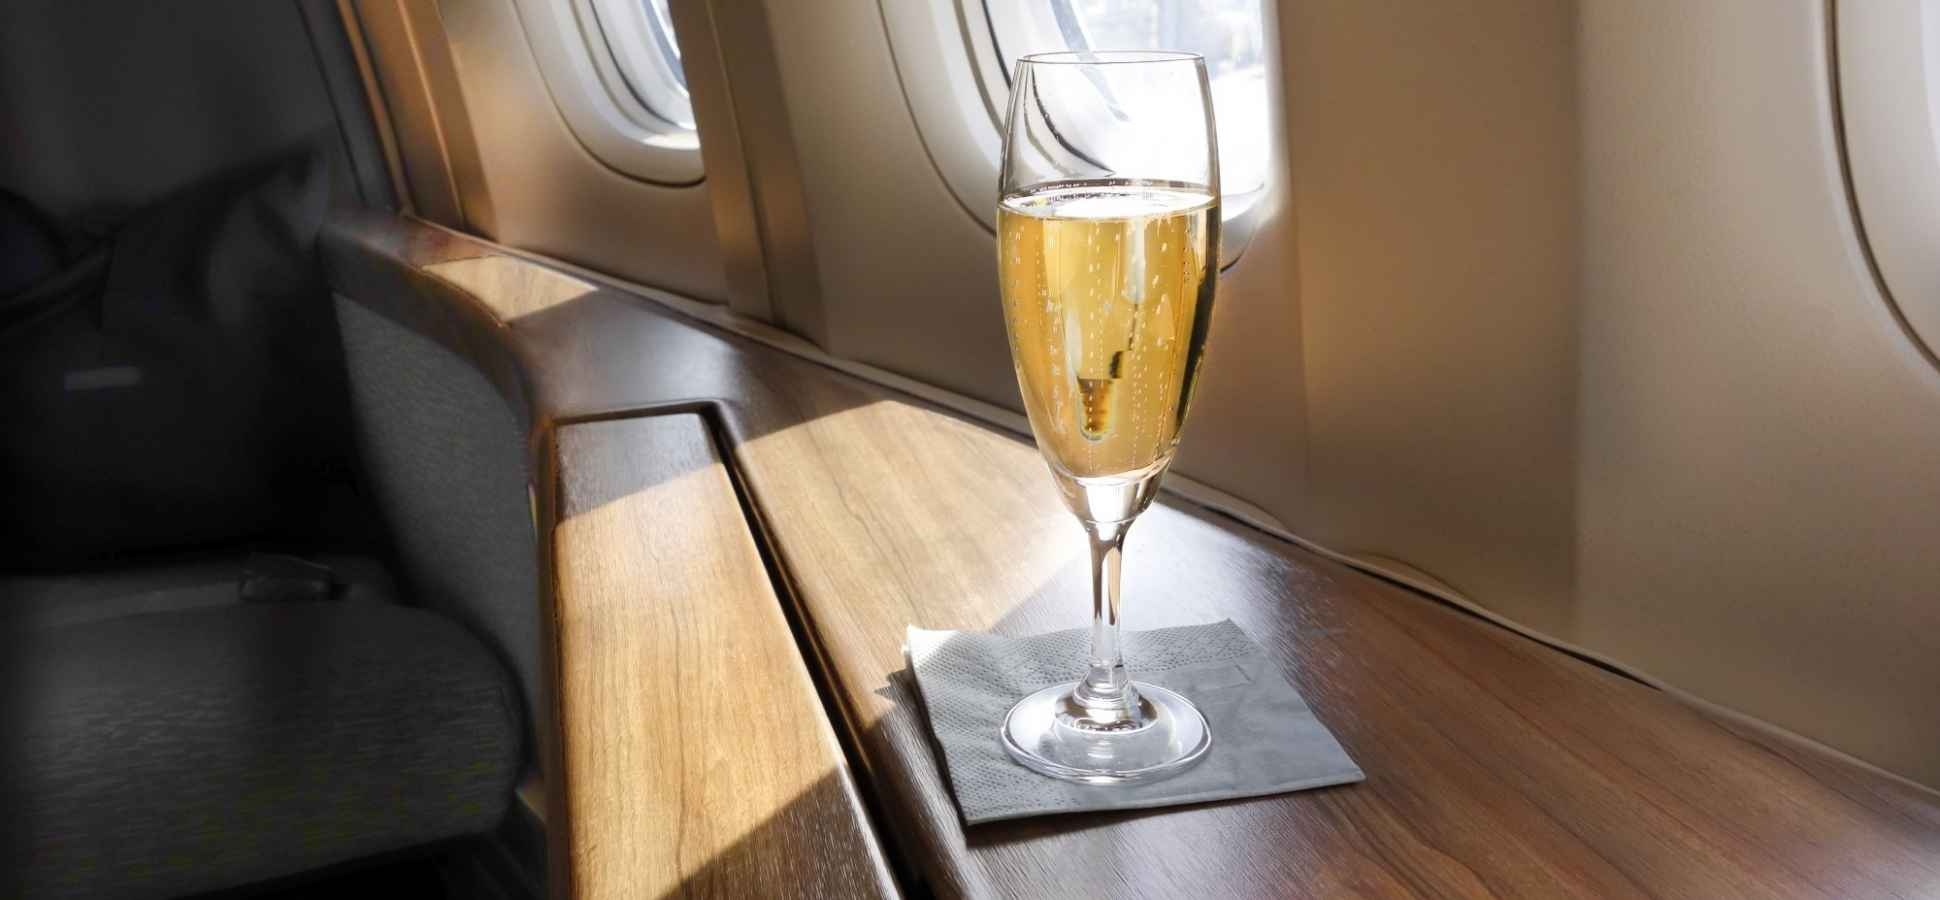 10 Ways to Get Bumped Up to First Class on Your Next Flight